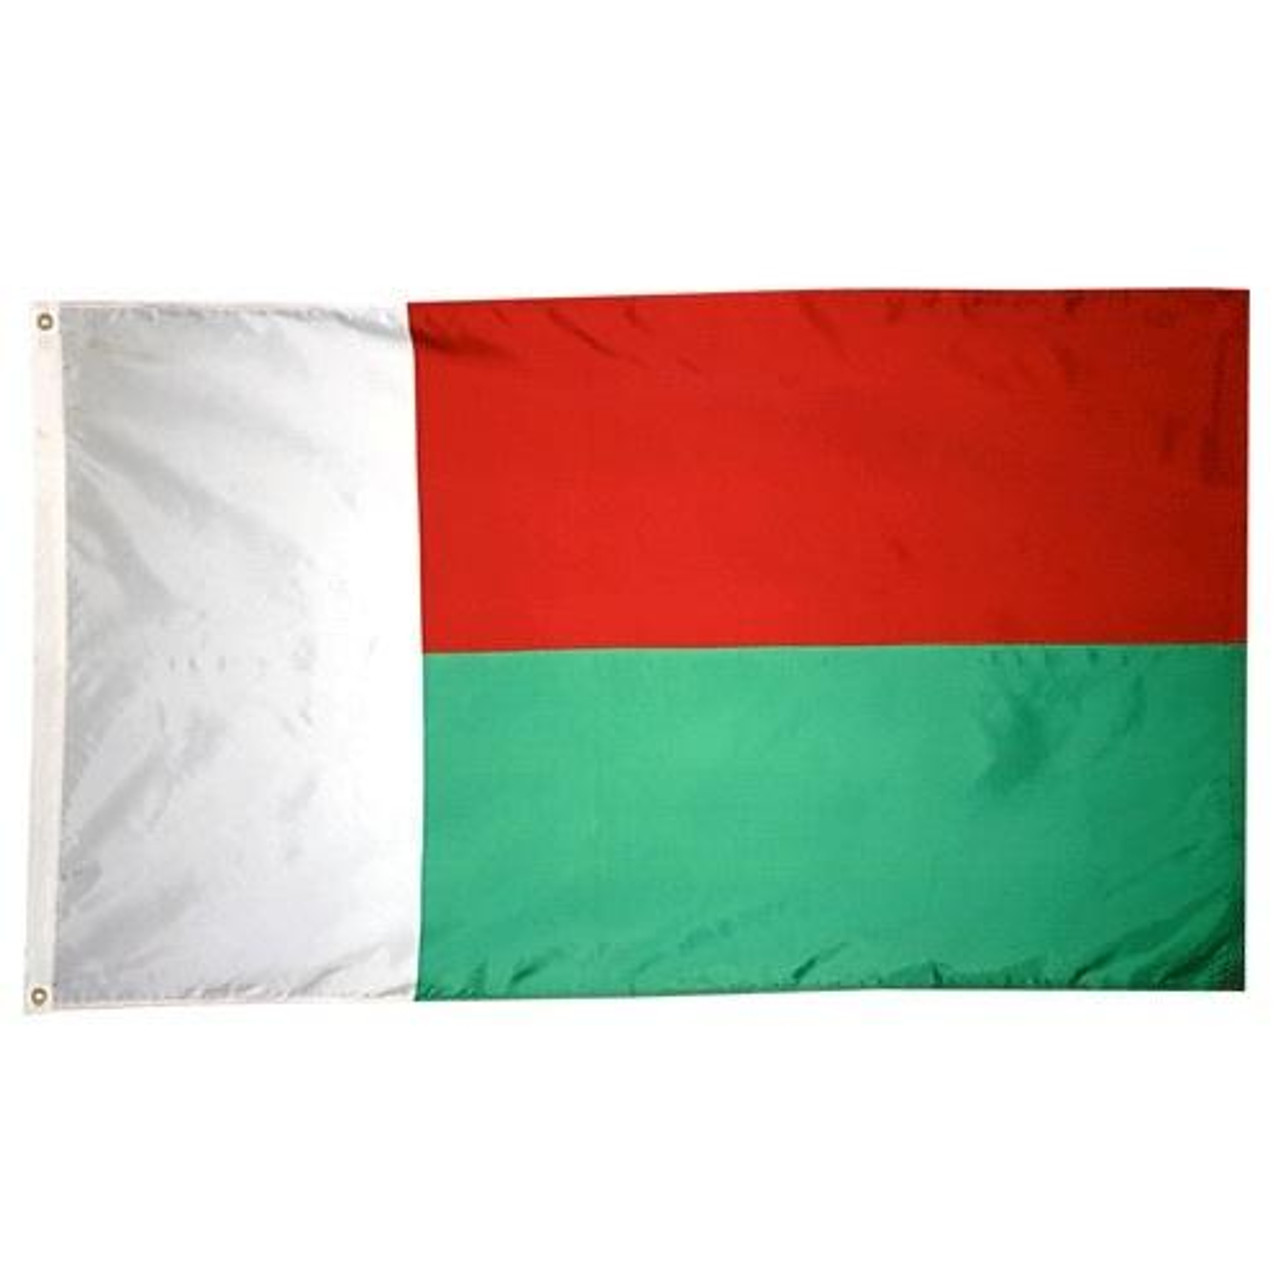 Madagascar Flag with a vertical white stripe at the hoist, horizontal red stripe to the top right, and green stripe on bottom right